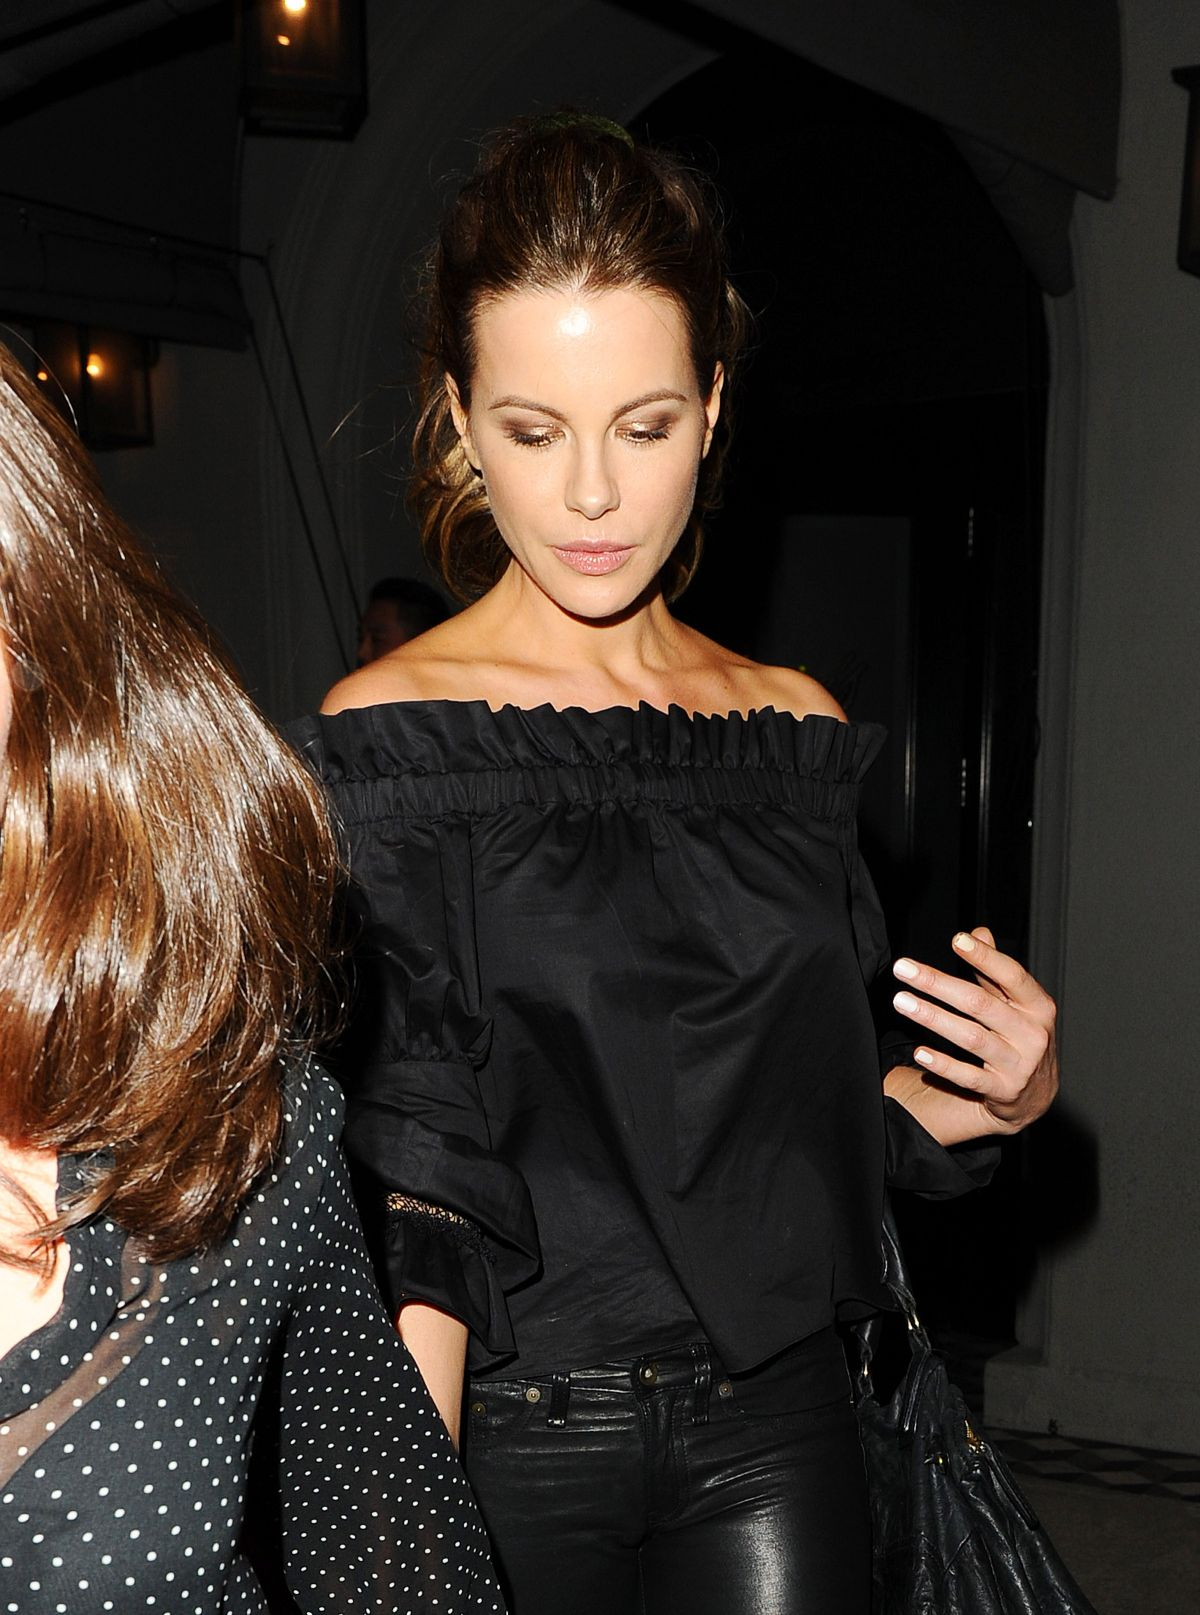 Kate beckinsale at craigs restaurant in hollywood nude (84 image)